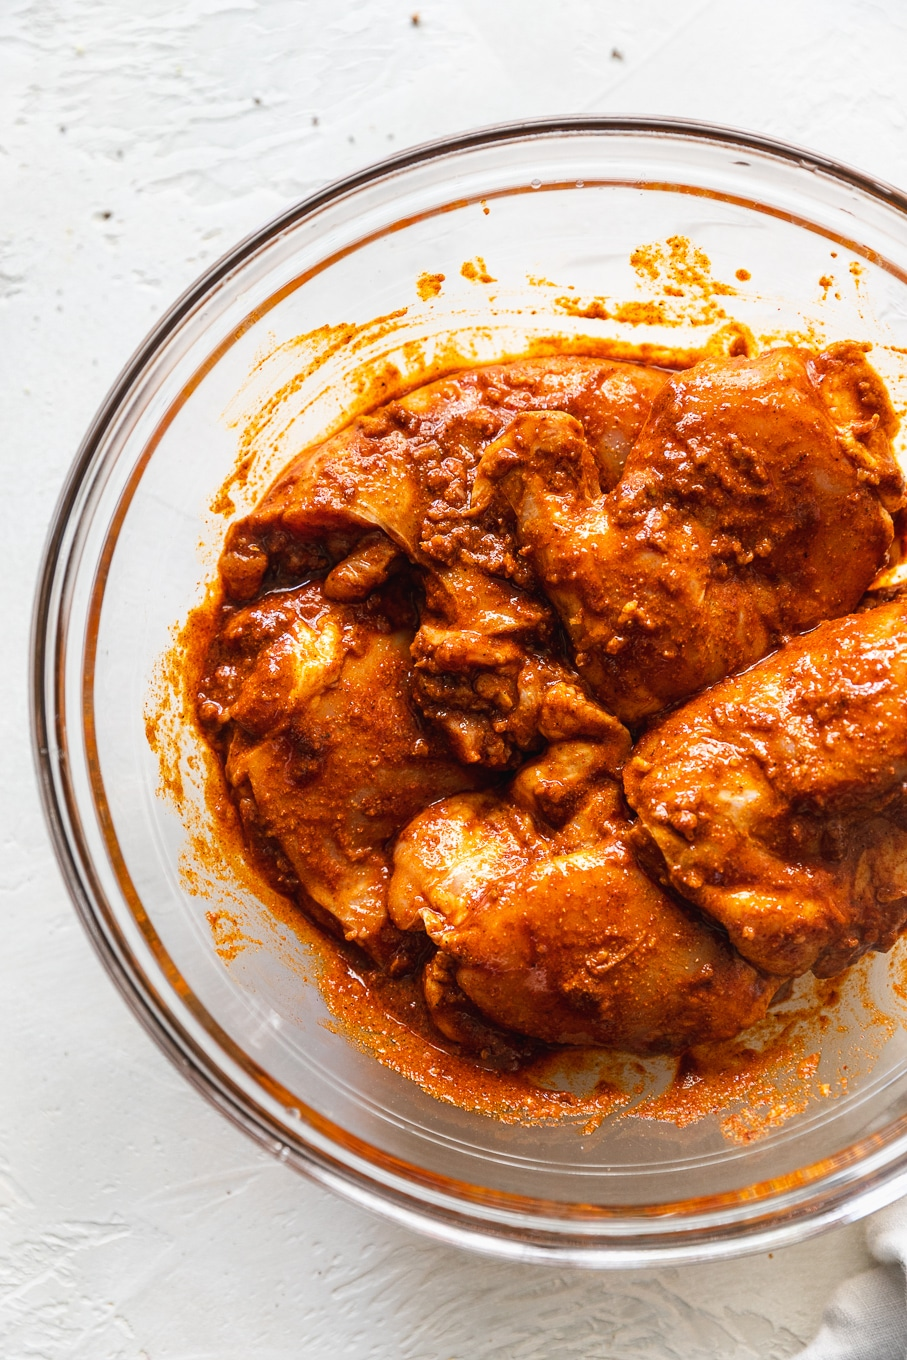 Overhead shot of a clear bowl filled with chicken marinating in bright orange and red spices